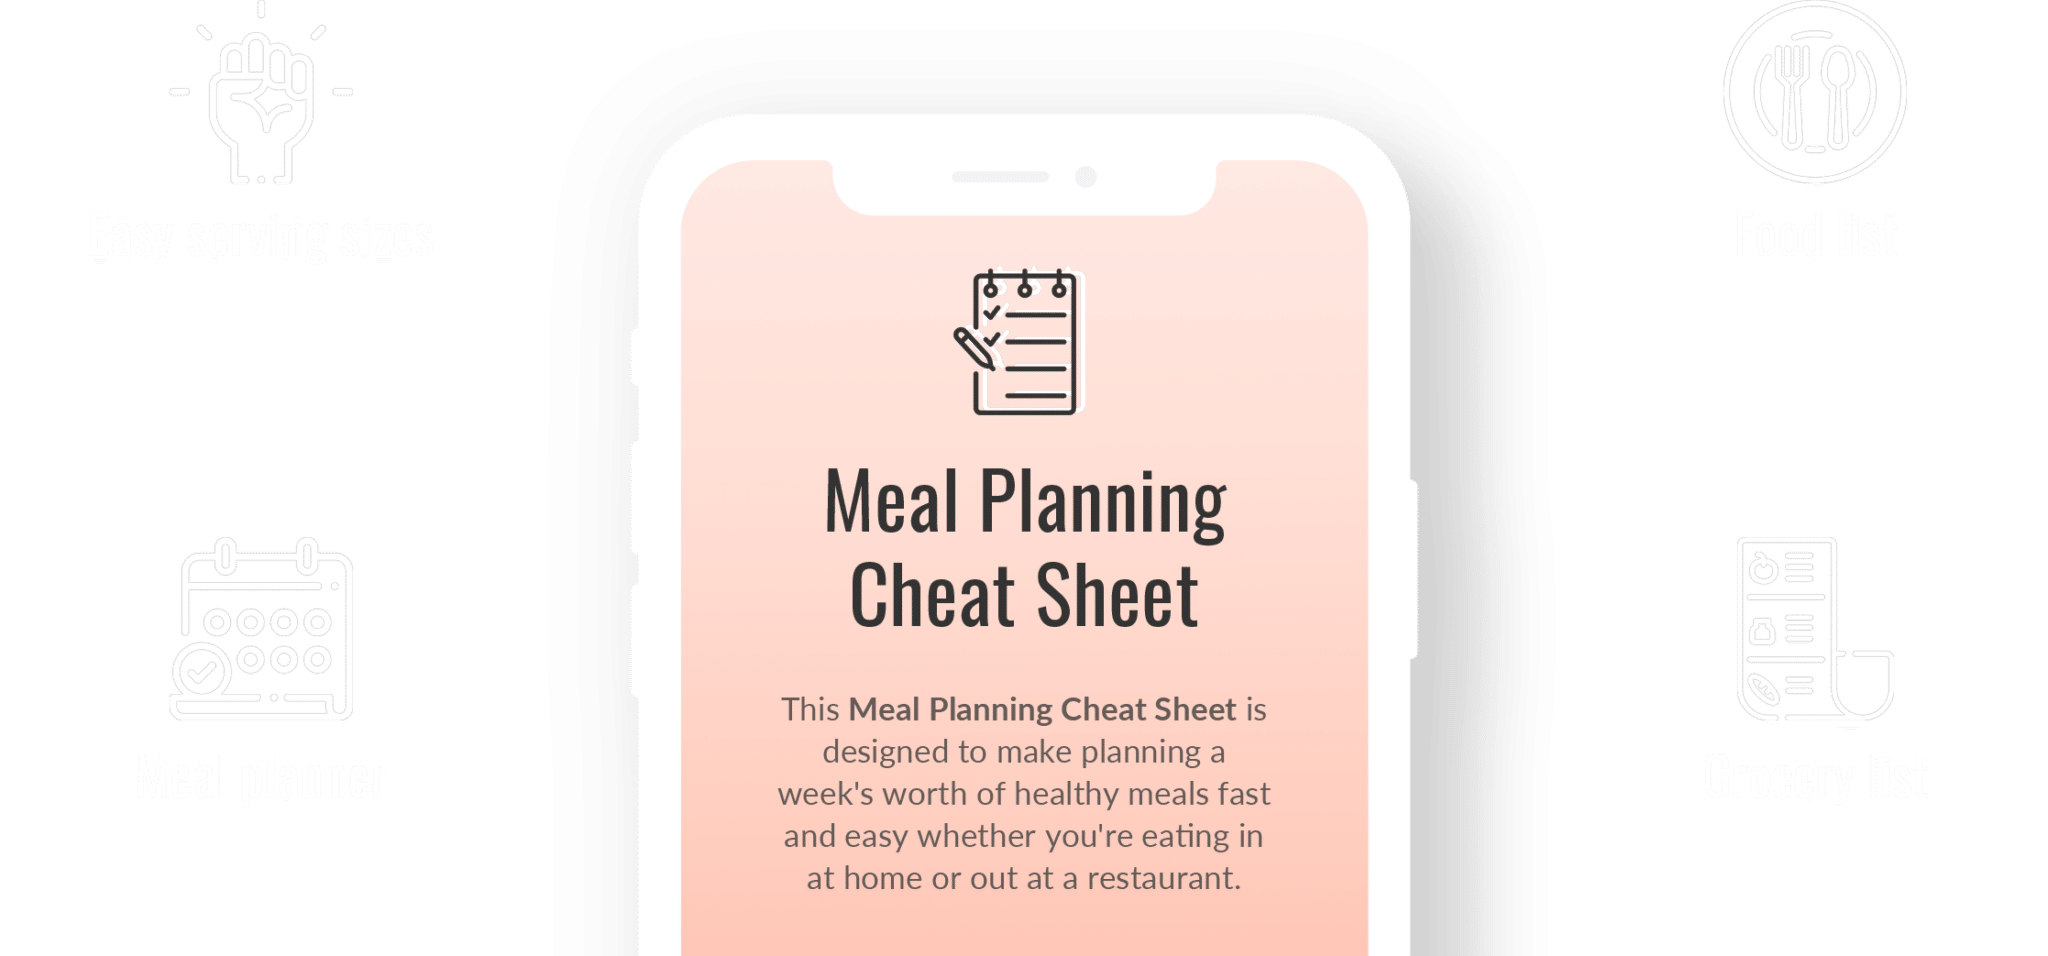 Meal planning cheat sheet